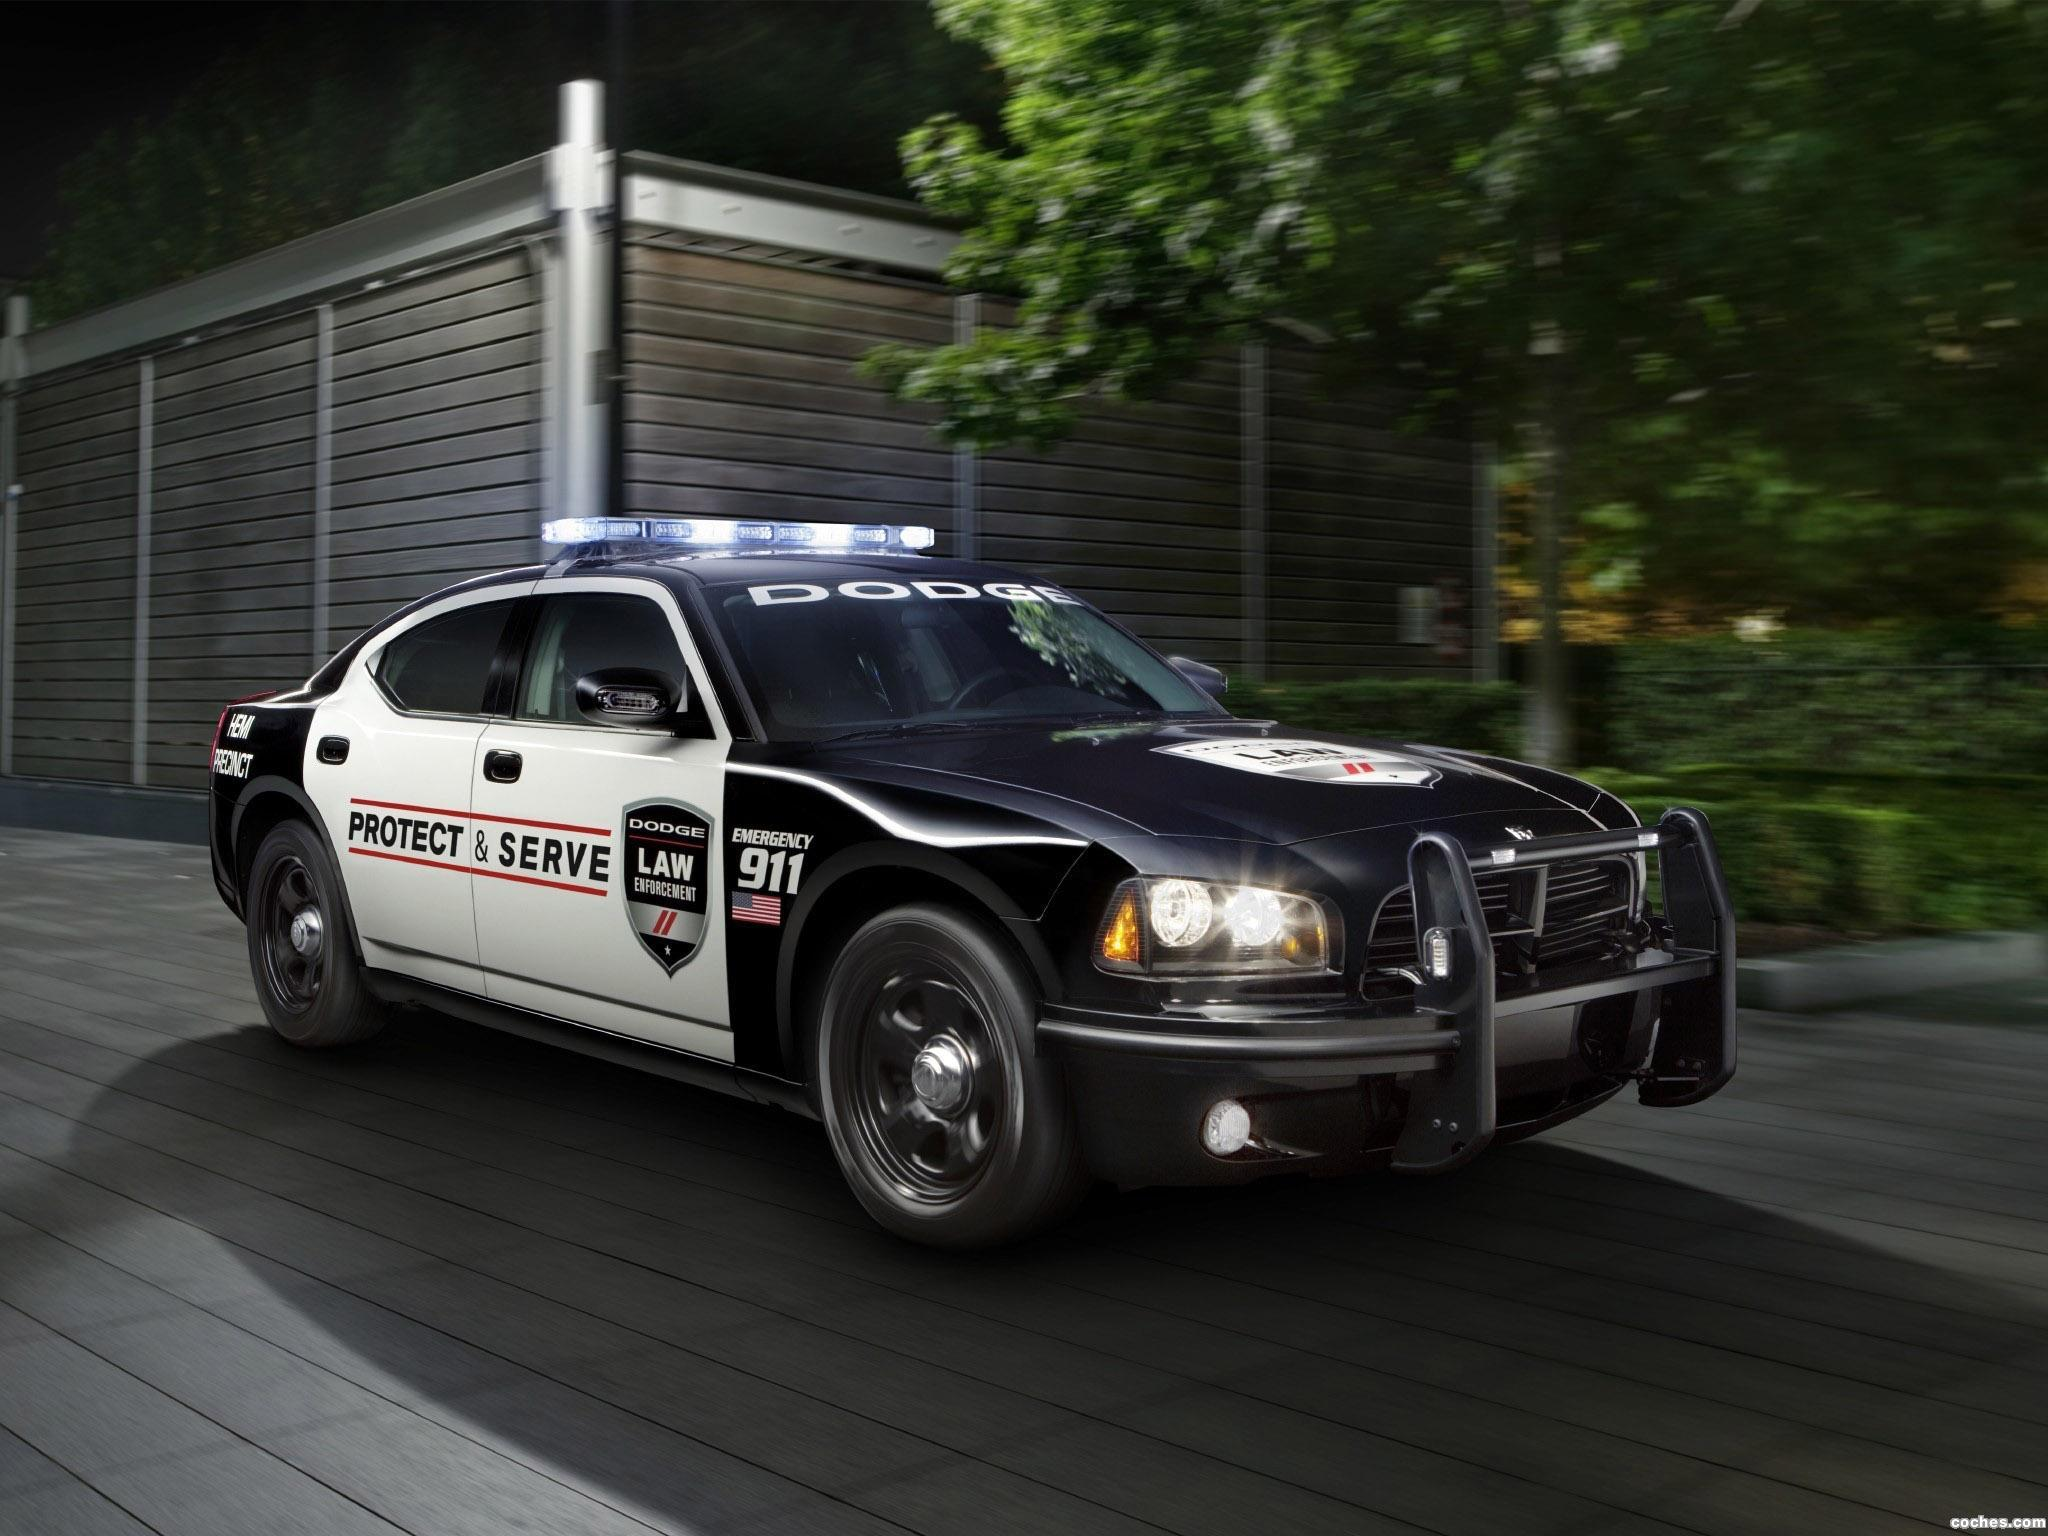 Foto 0 de Dodge Charger Pursuit Police 2010